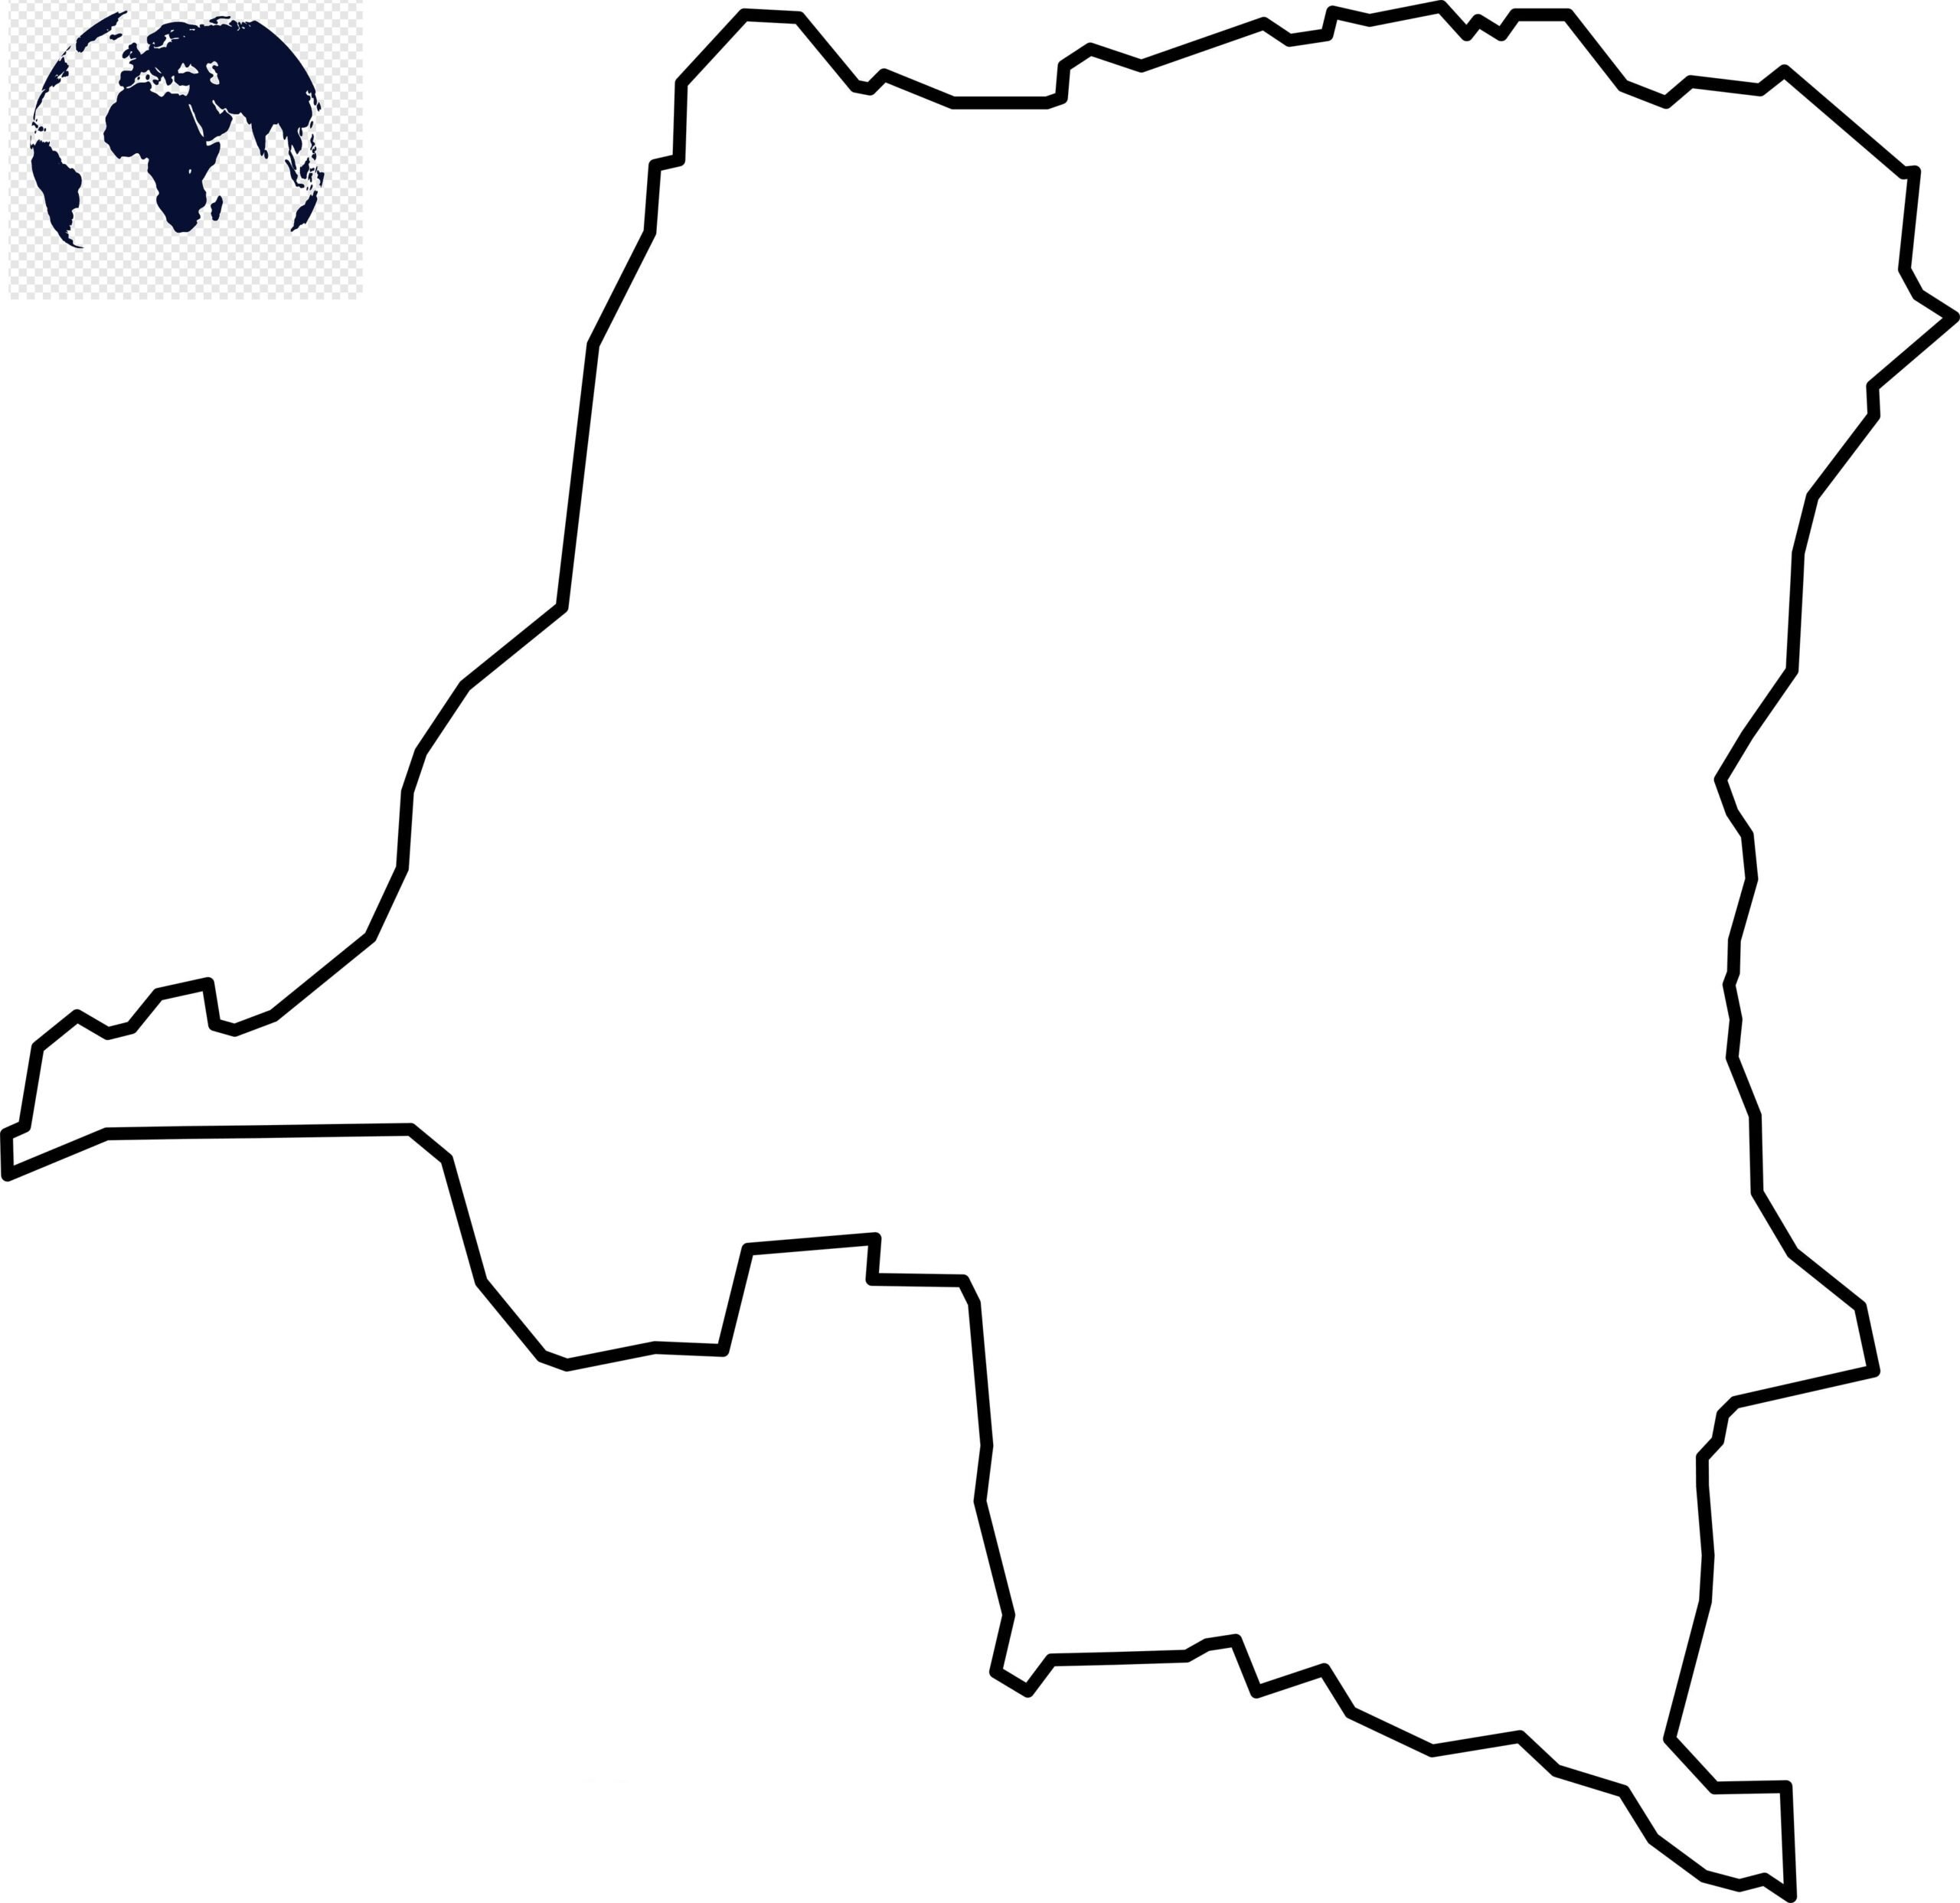 Blank Map of Congo - Outline